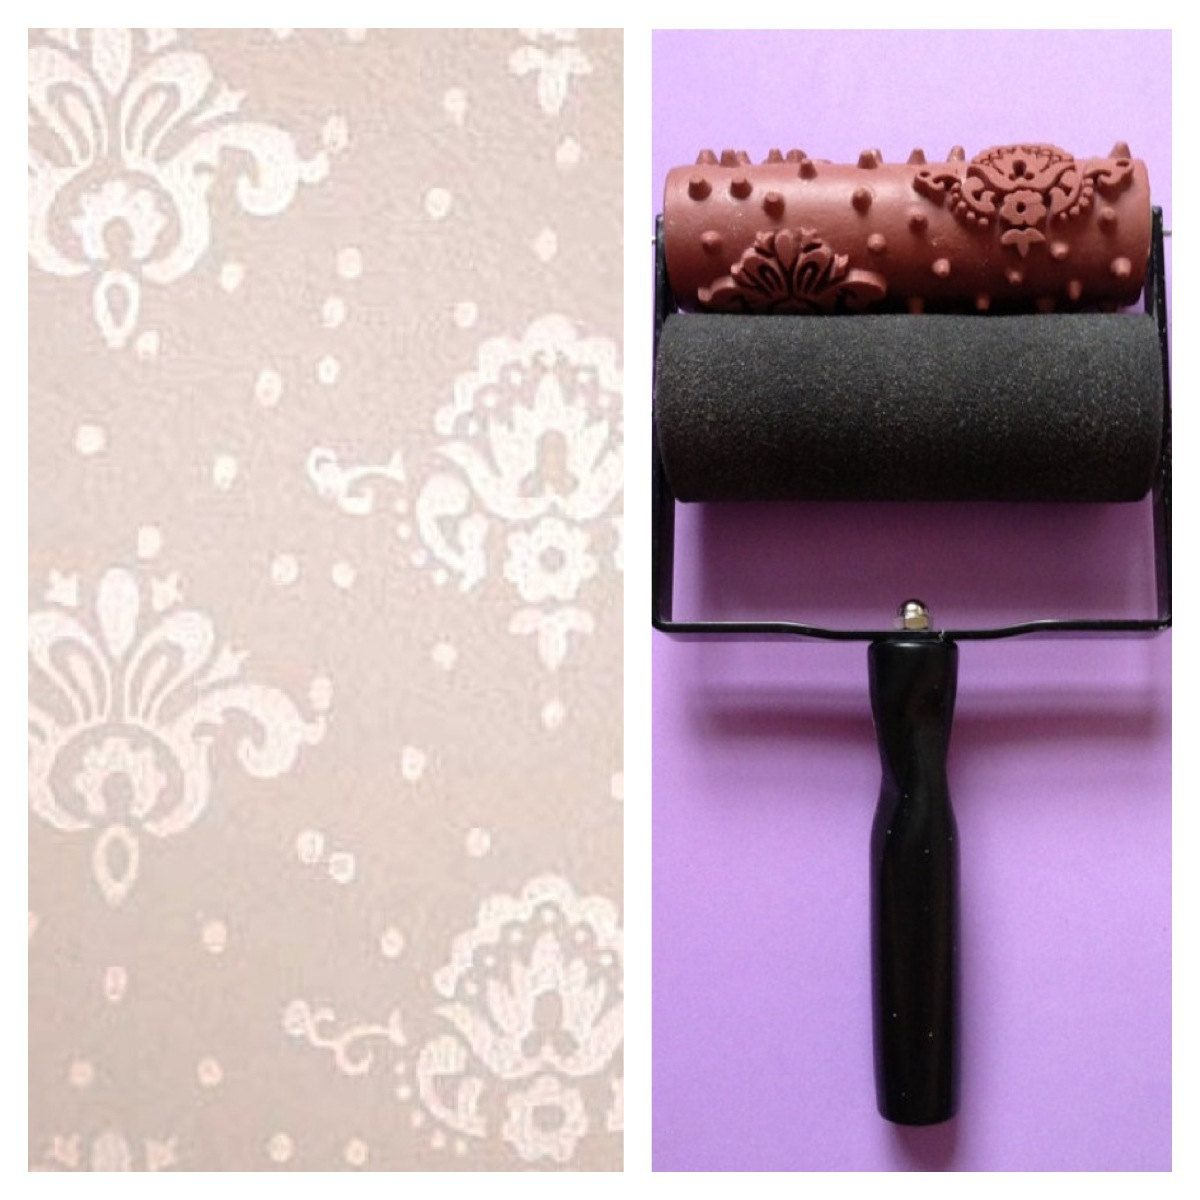 Patterned Paint Roller In Petite Damask Design And By Notwallpaper